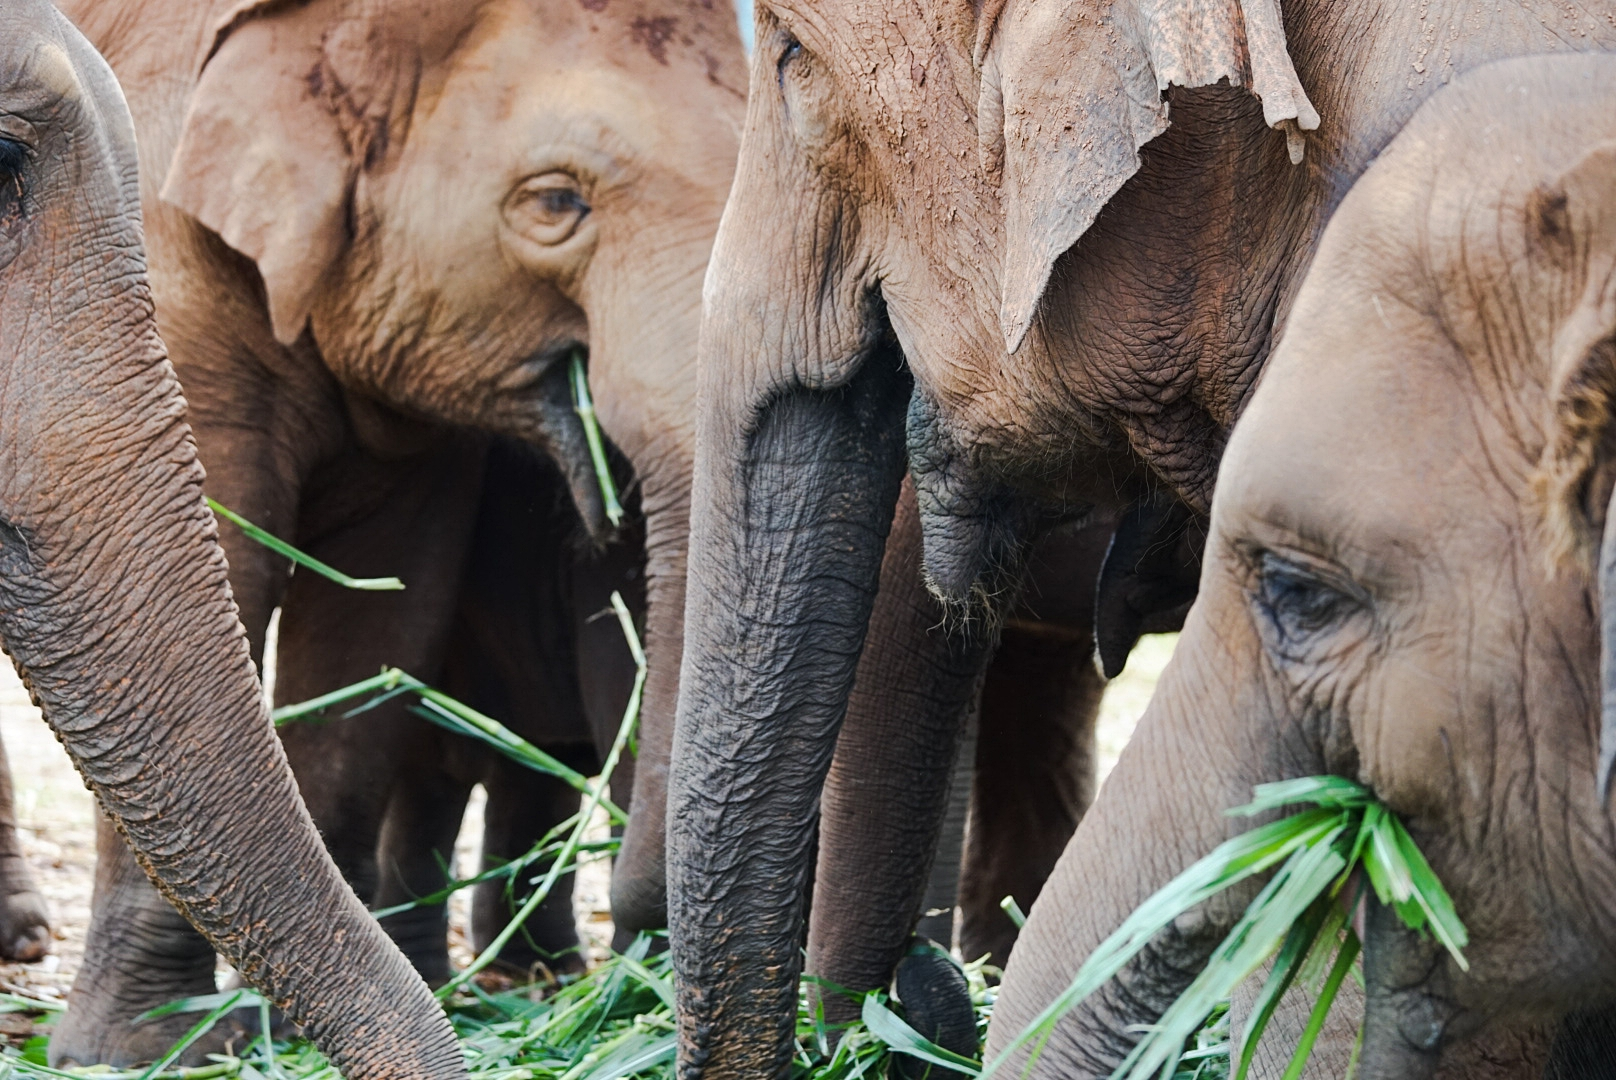 WILD THINGS: A herd of Asian elephants enjoy their tasty vegetation - Chiang Mai, Thailand